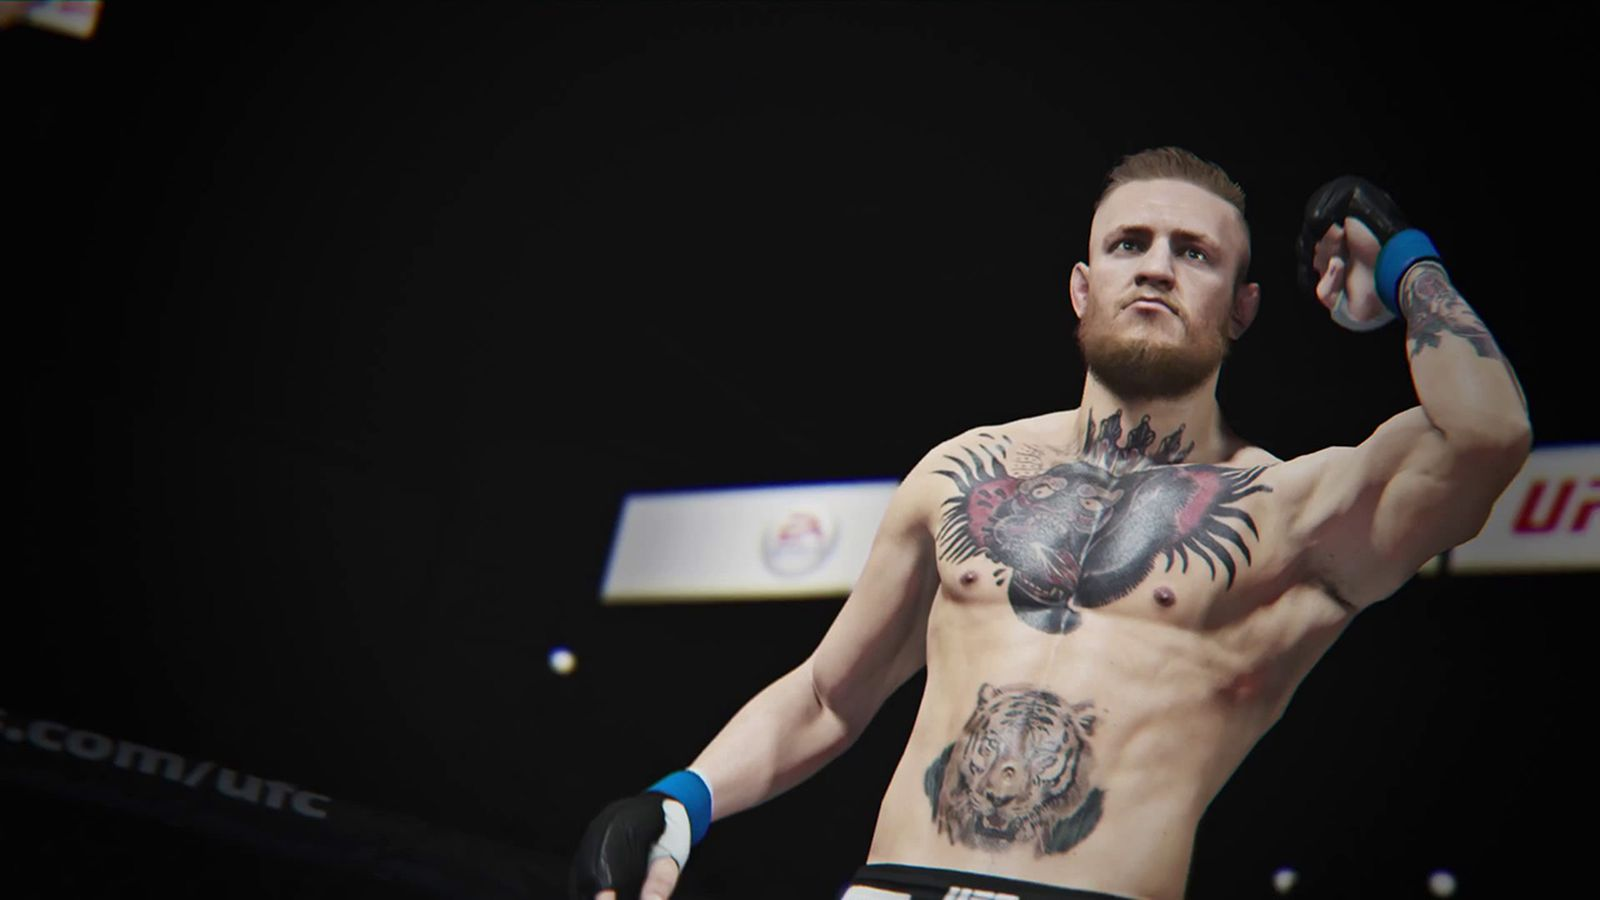 Conor McGregor Confirms Hes Going To Be In New Call Of Duty Screenshot of EA Sports UFC 2 Conor McGregor